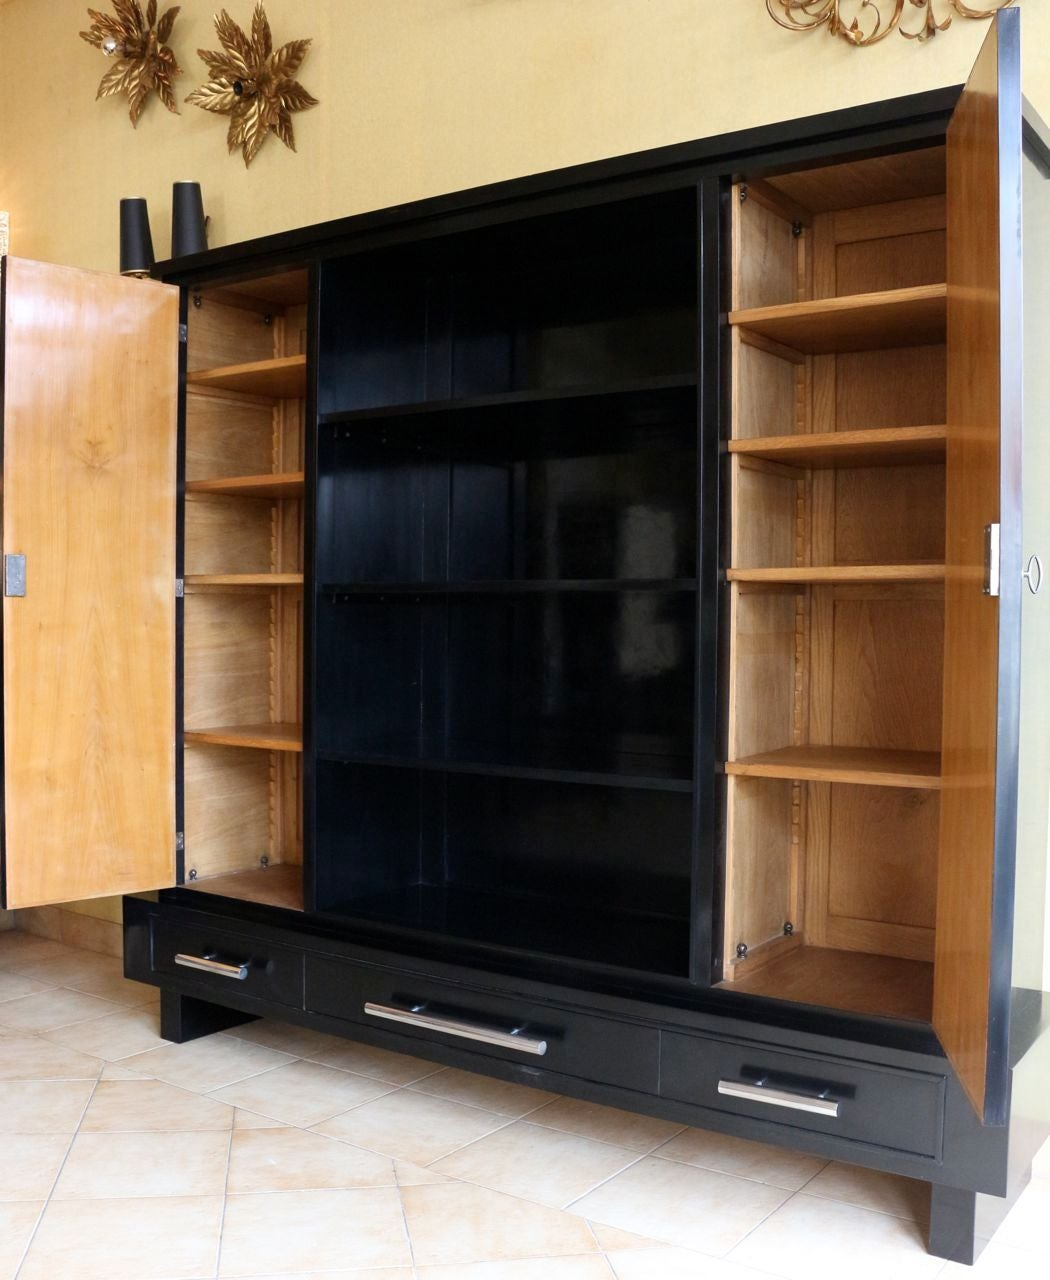 1940s bookcase by Rene Gabriel in black waxed lacquer, consisting of two doors, black lacquer exterior and mahogany inside with shelves. Set of three large shelves in the center.